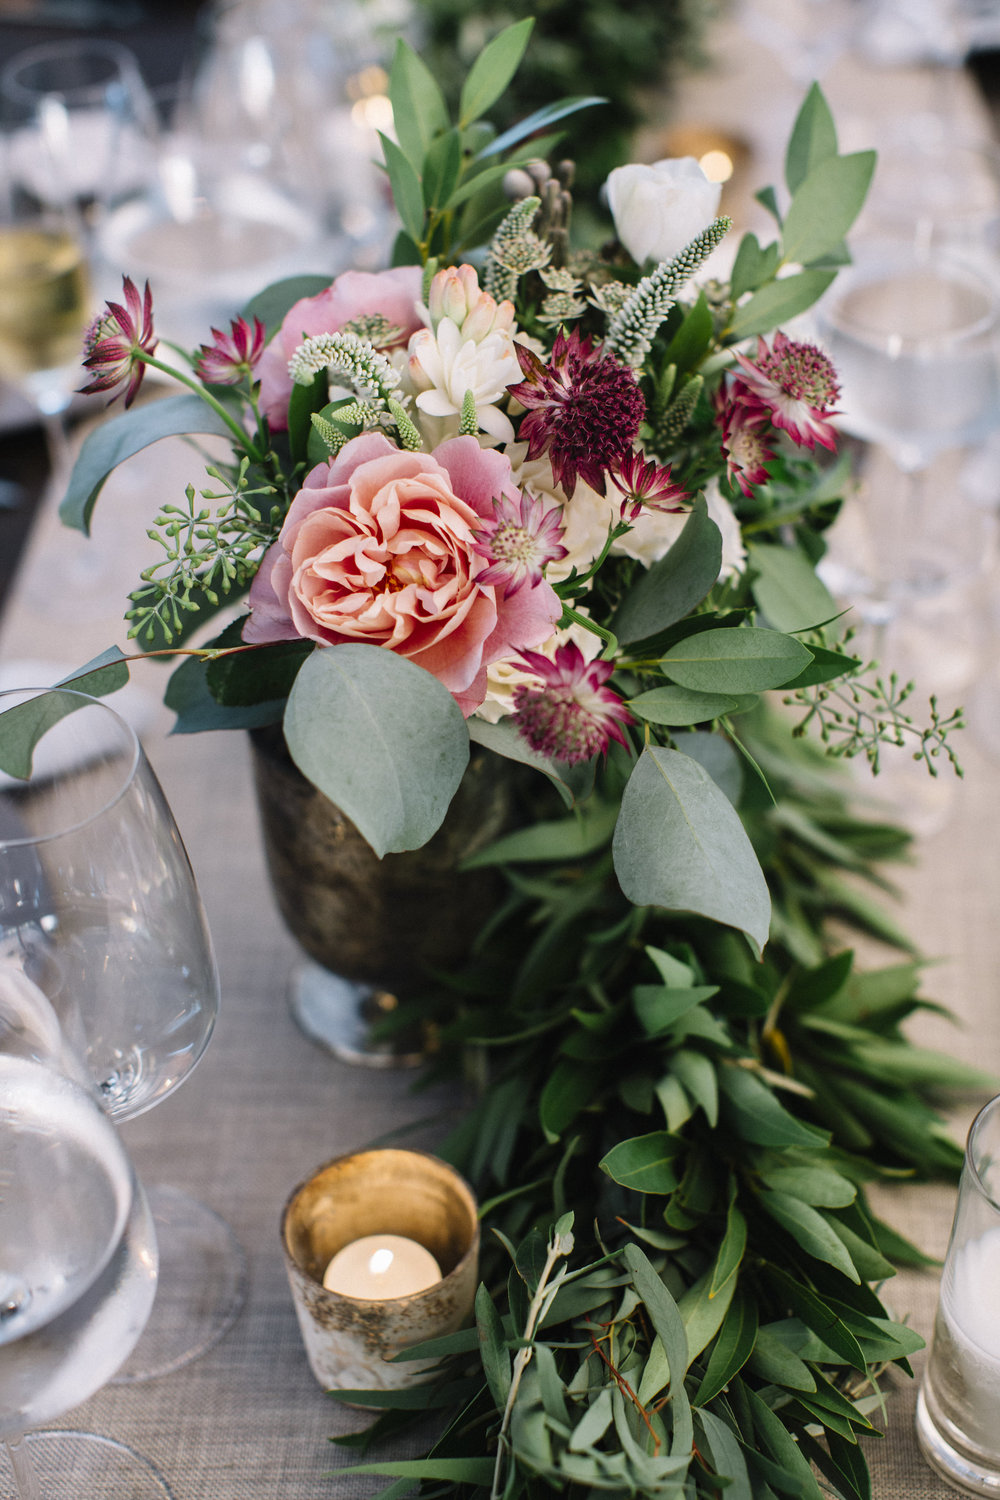 Shimmery votives, greenery garland, and composed centerpieces create a vibrant runner for the length of your table | Design by Venn Floral | Photo by Lucille Lawrence